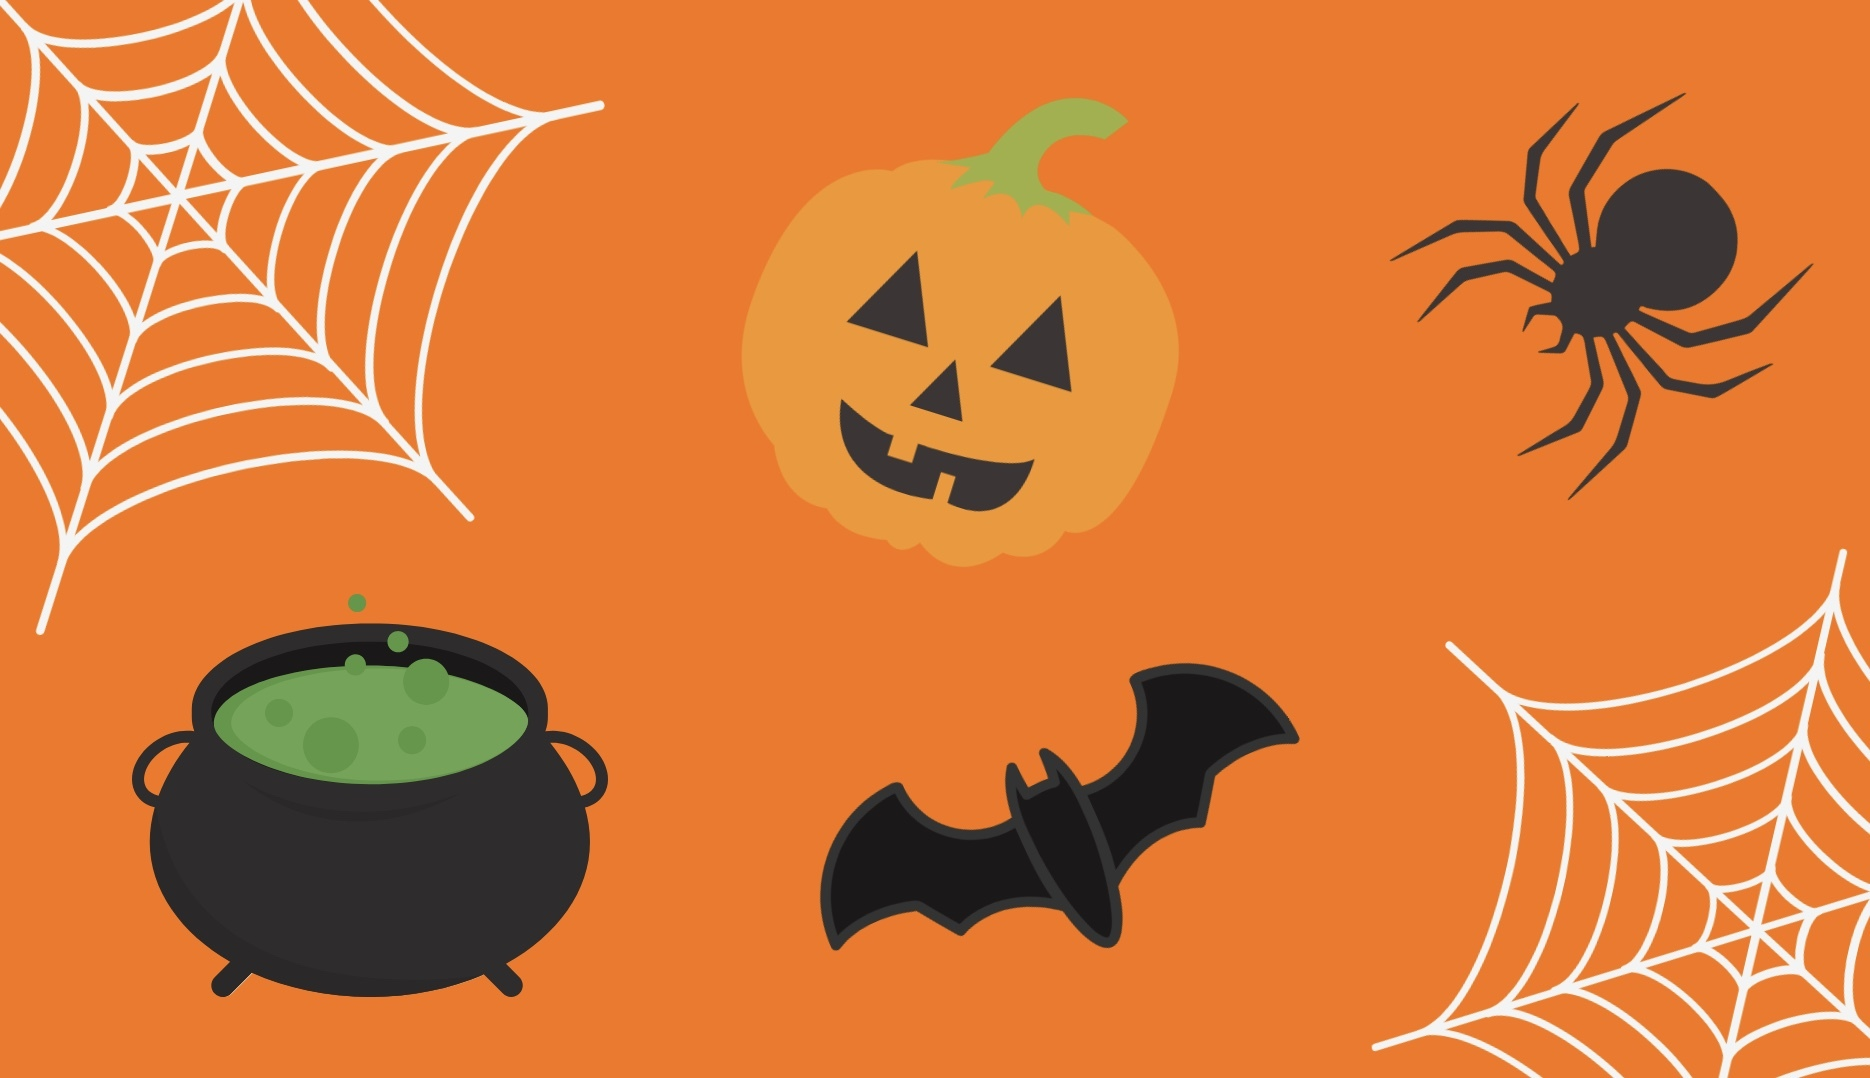 The illustration consists of an orange background with several cartoon-like graphics scattered throughout: two spider webs, a spider, a bat, a cauldron with green, bubbling liquid and a pumpkin with a smiling face.